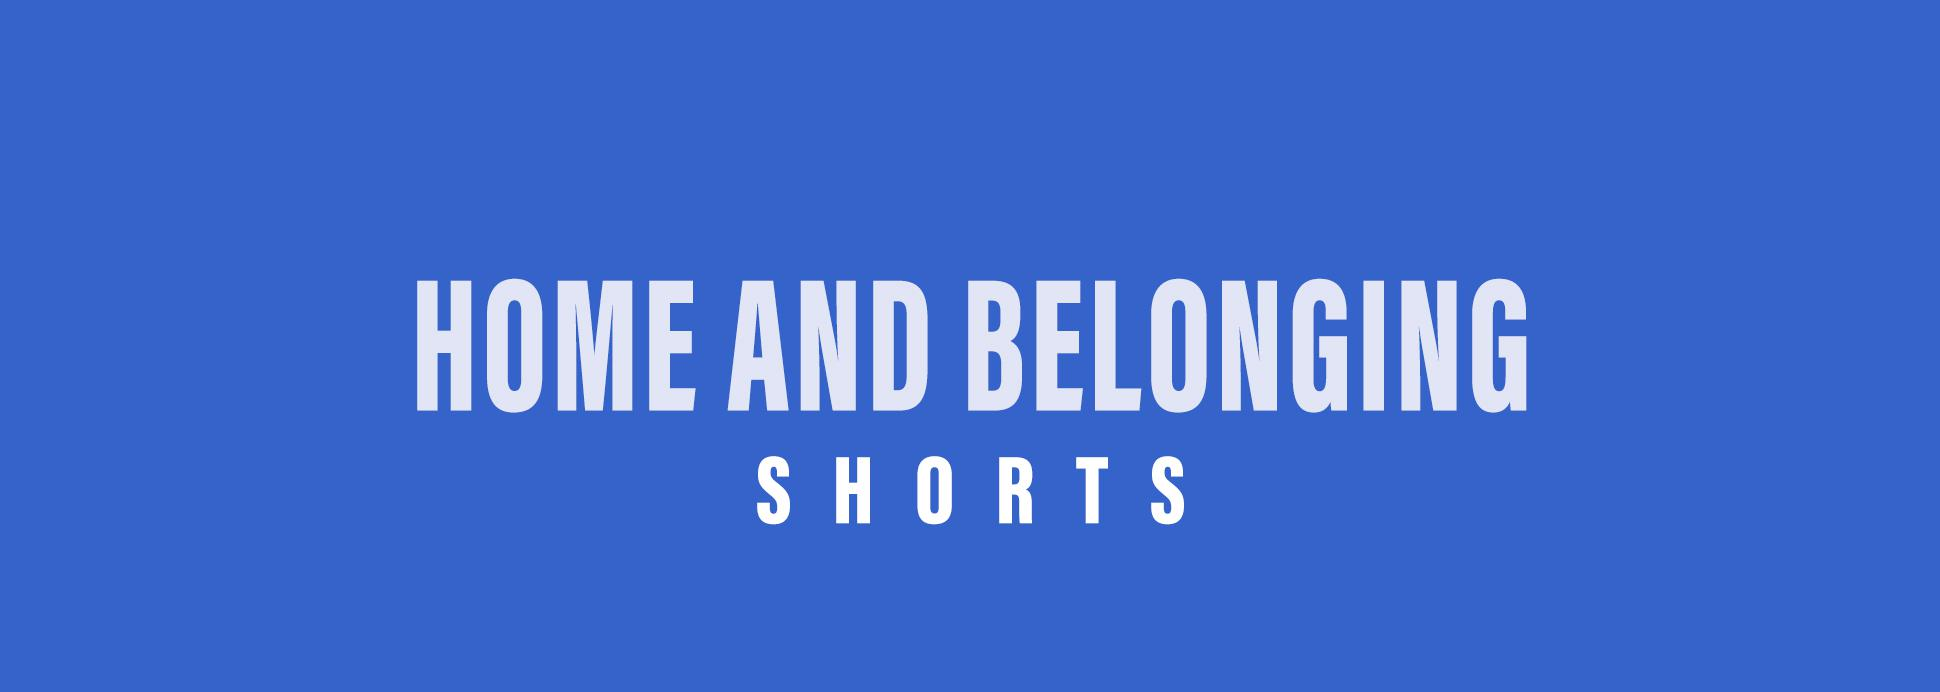 Shorts: Home and Belonging